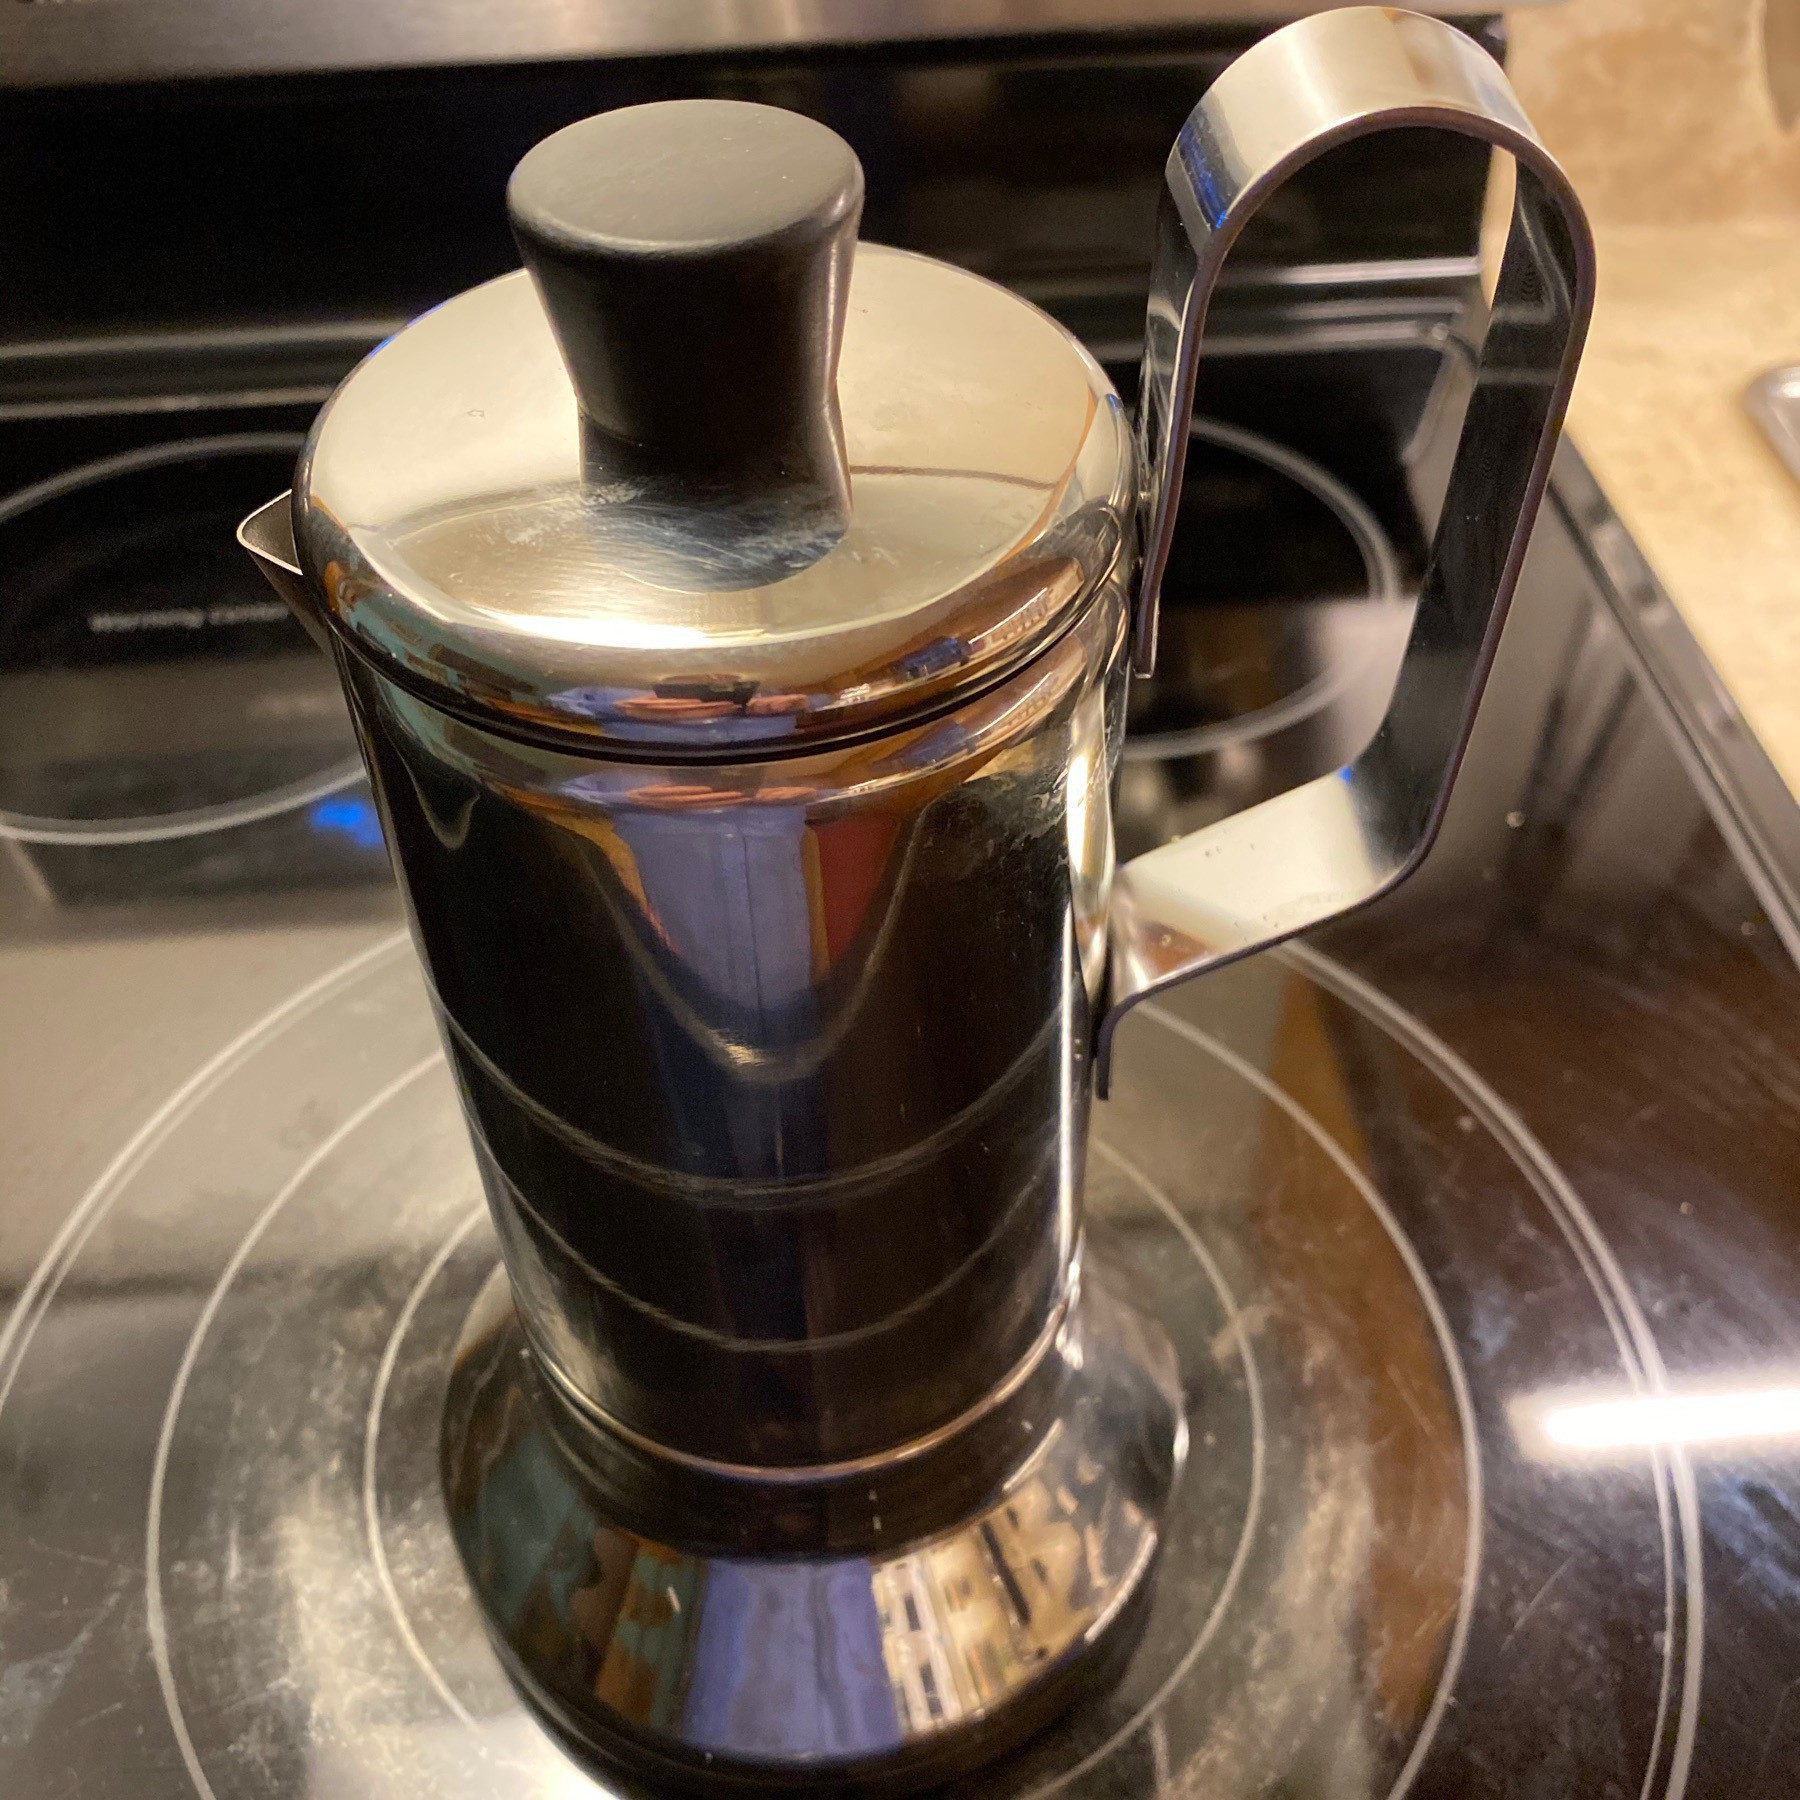 Espresso maker on stove burner.